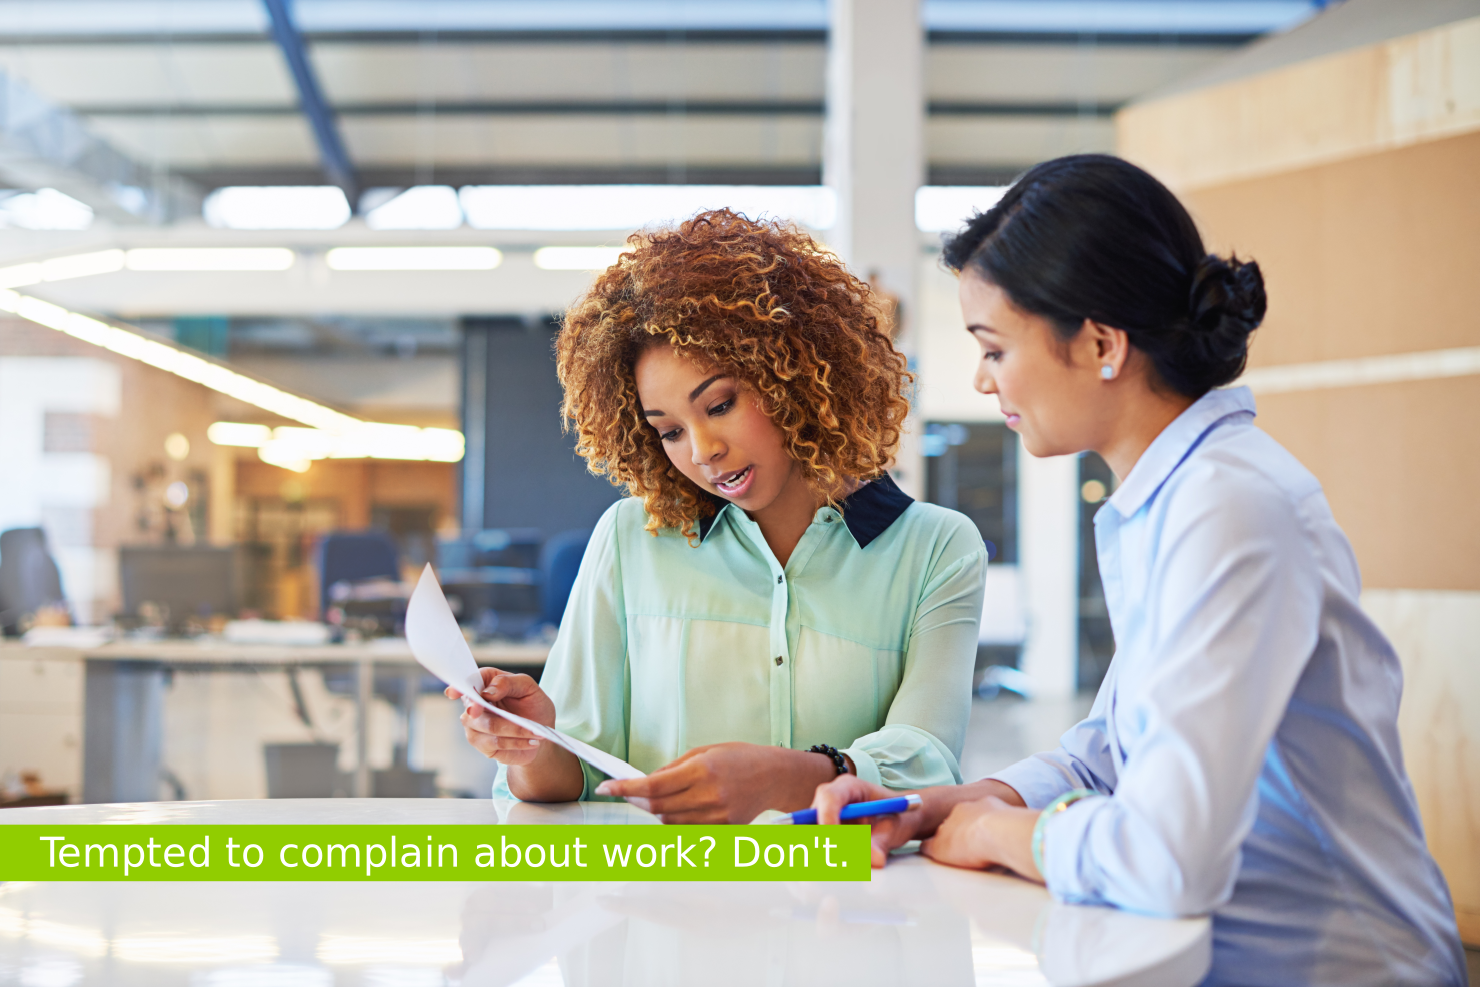 complaints in your workplace